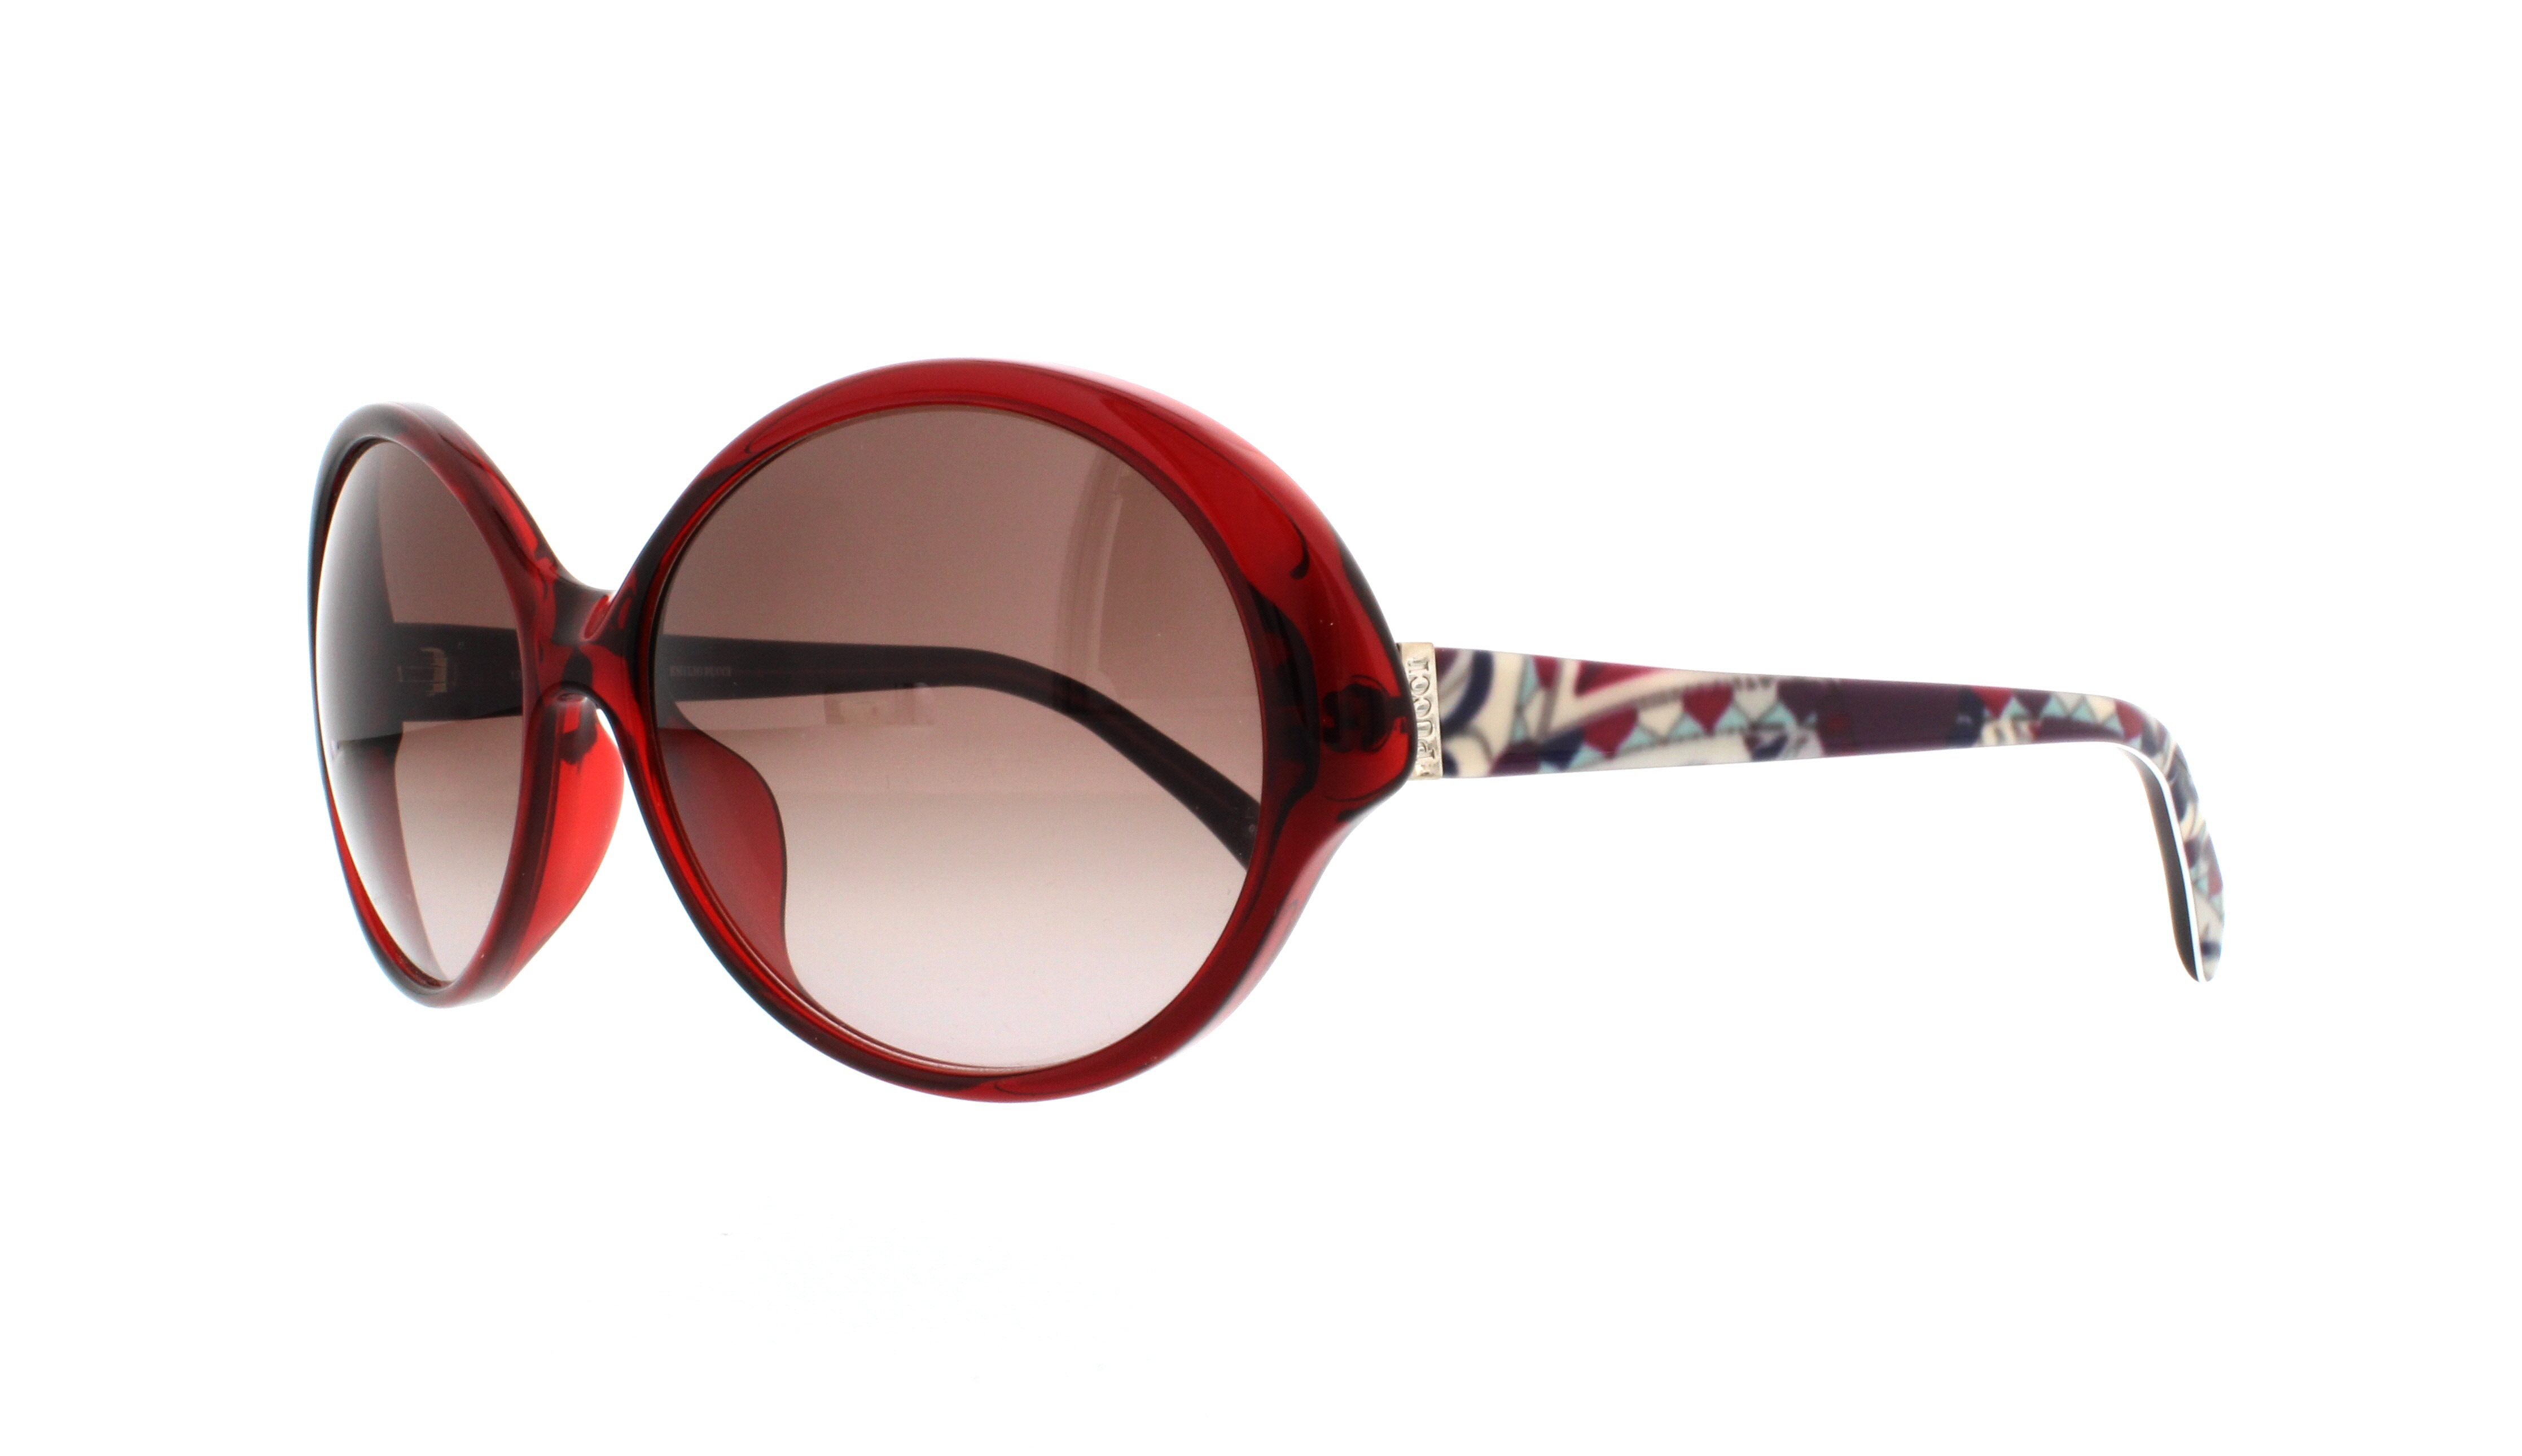 EMILIO PUCCI Sunglasses 672S 604 Burgundy Marble 59MM 883901044553 ...